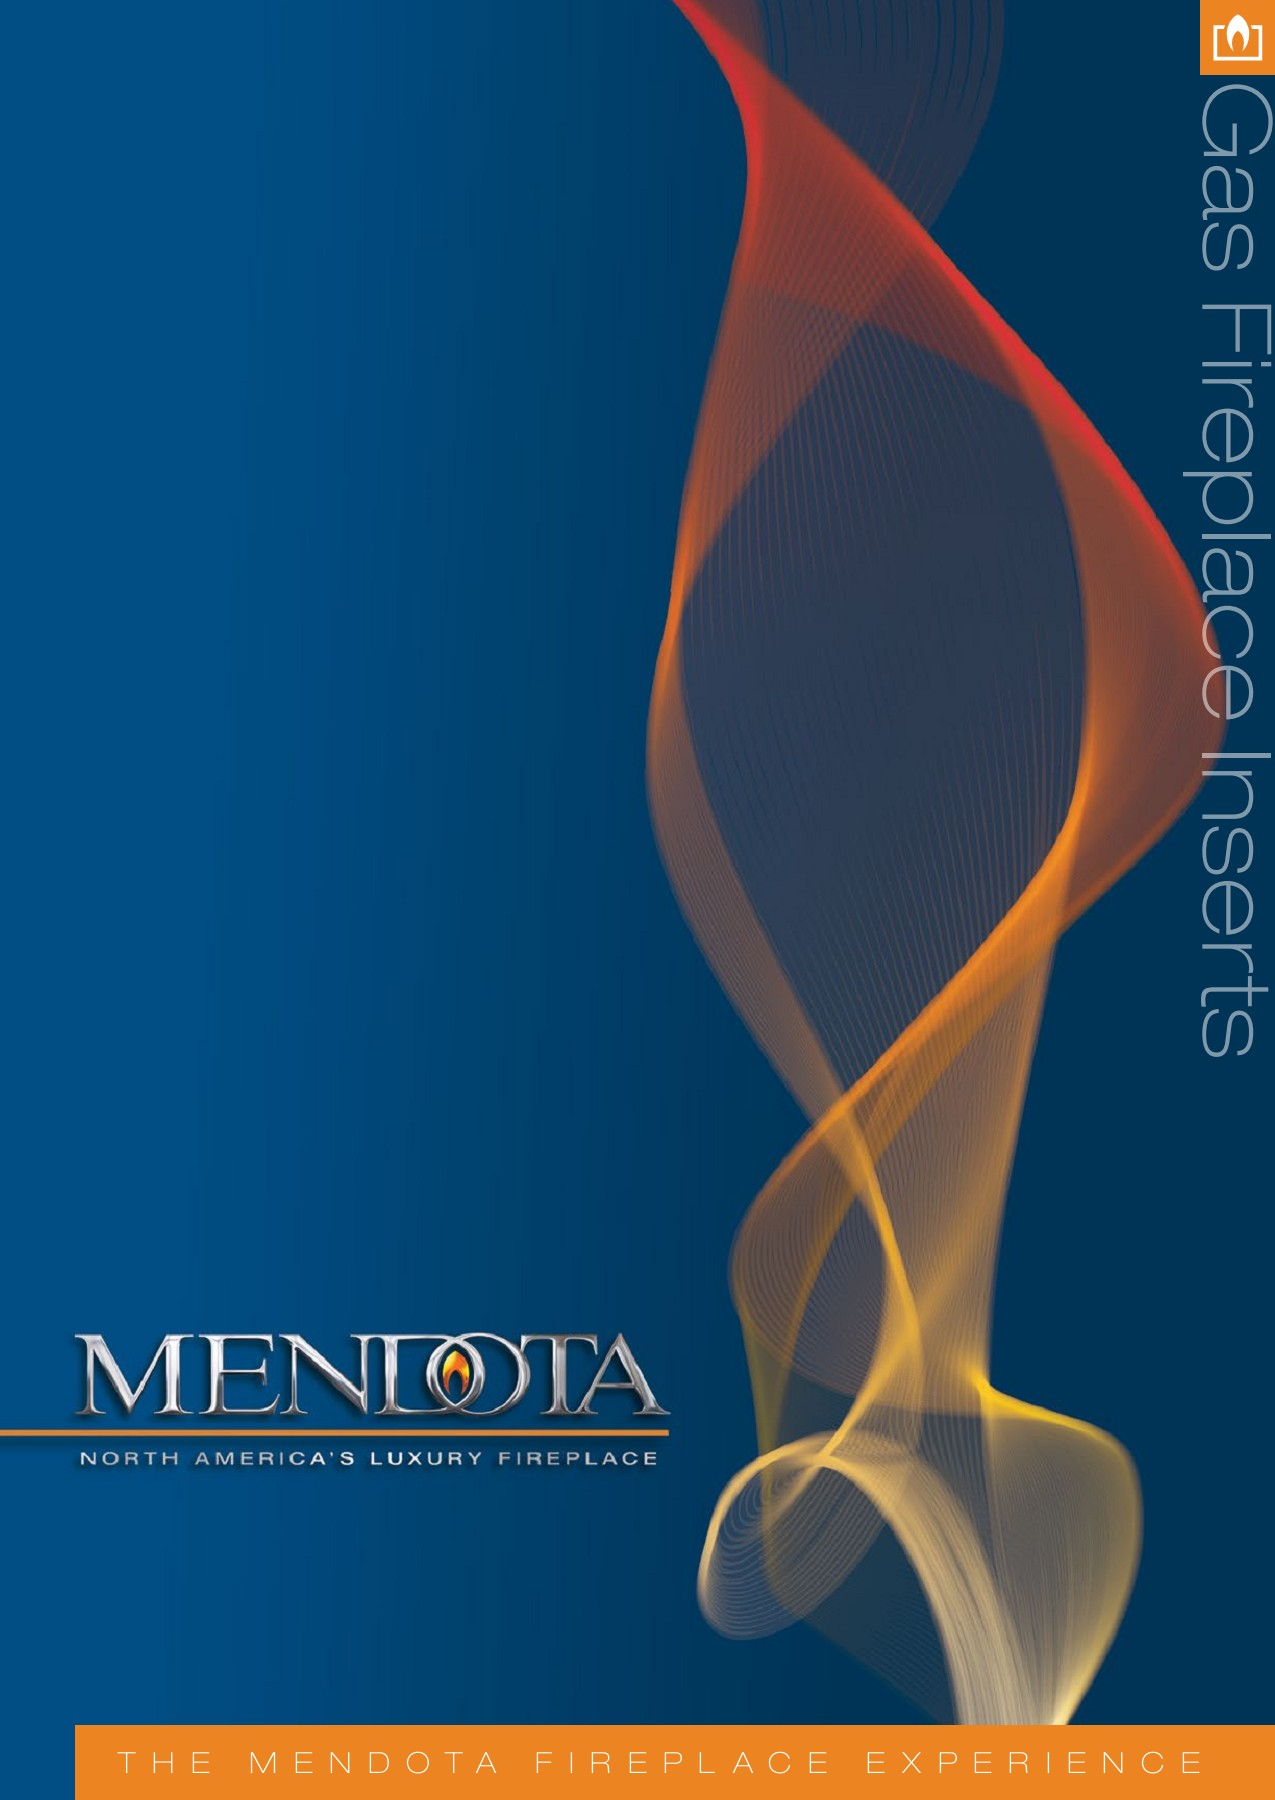 Gas Fireplace Inserts Mendotahearth Com Pages 1 32 Text